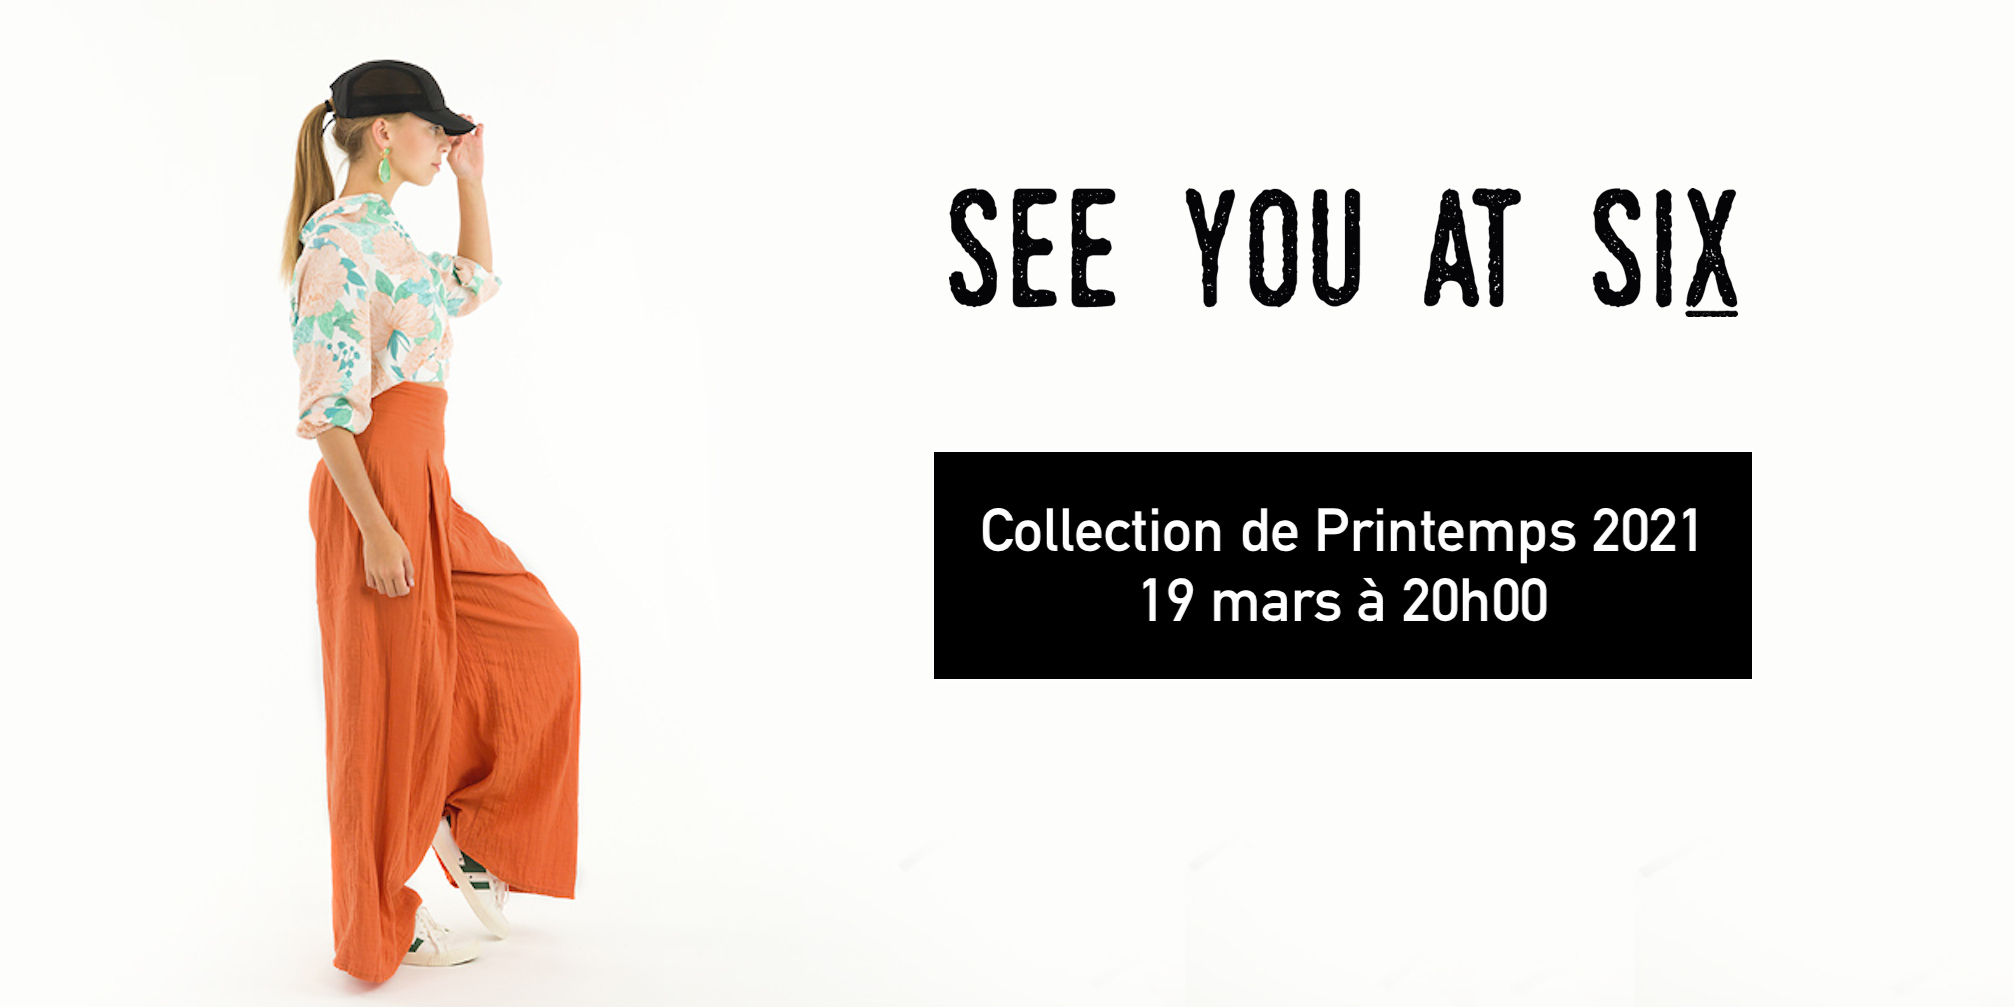 See You at Six Spring 21 @ Coup de coudre